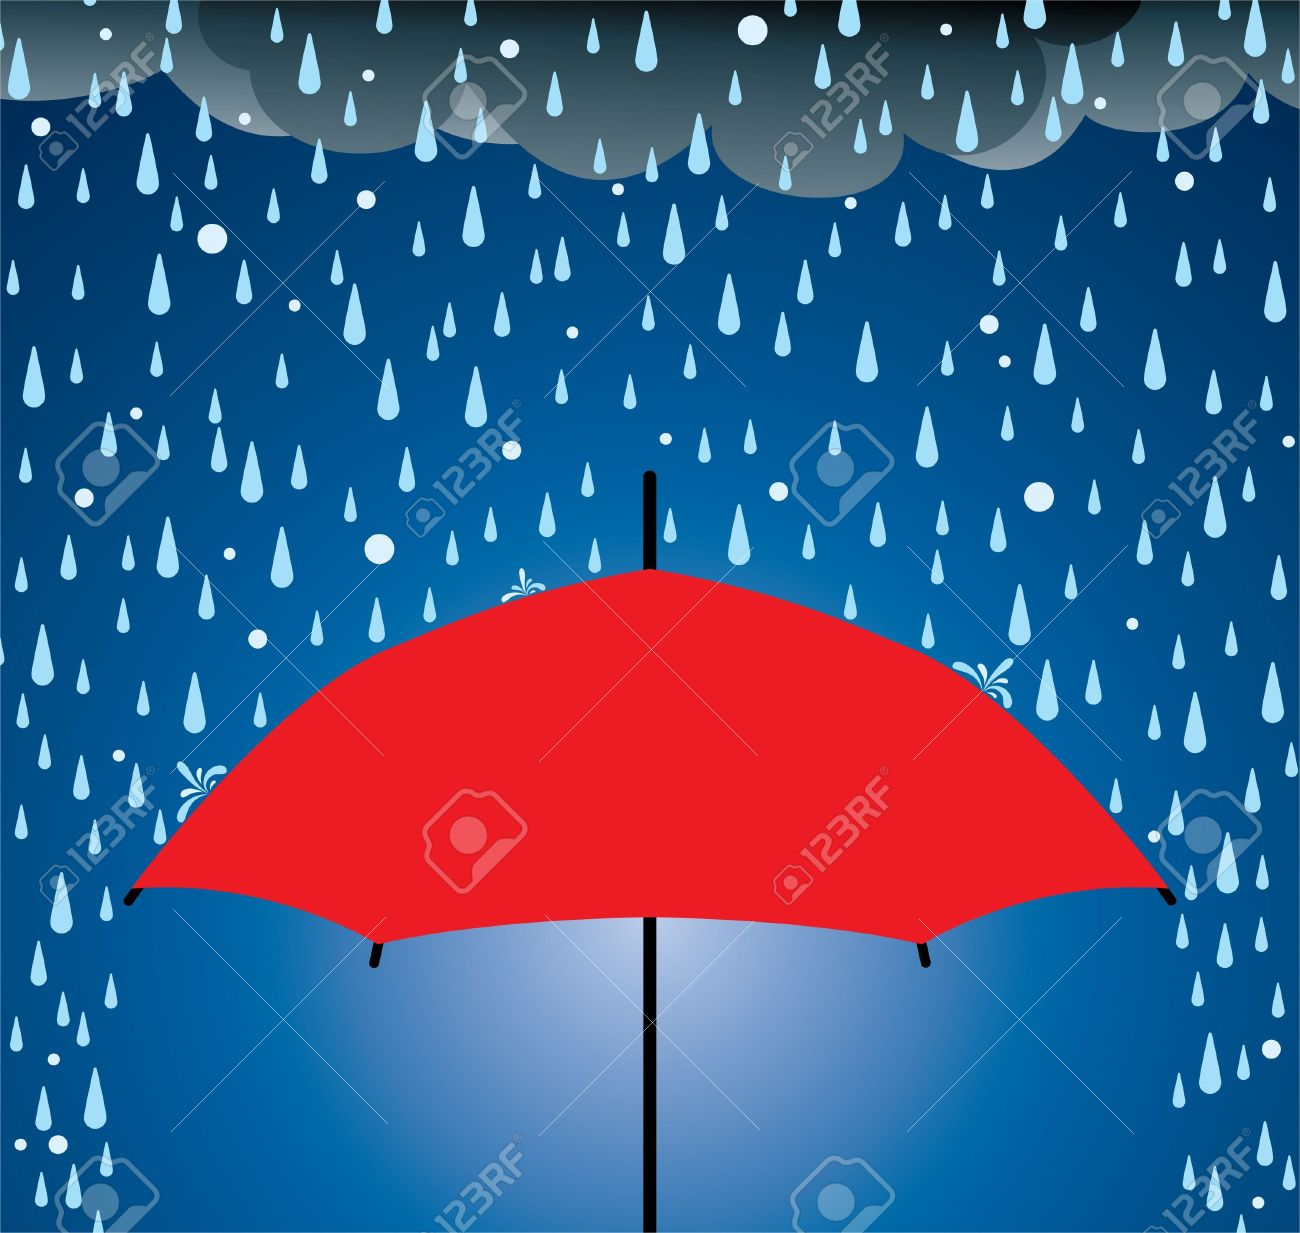 Illustration of umbrella protection from rain and hail Stock Vector - 10501646